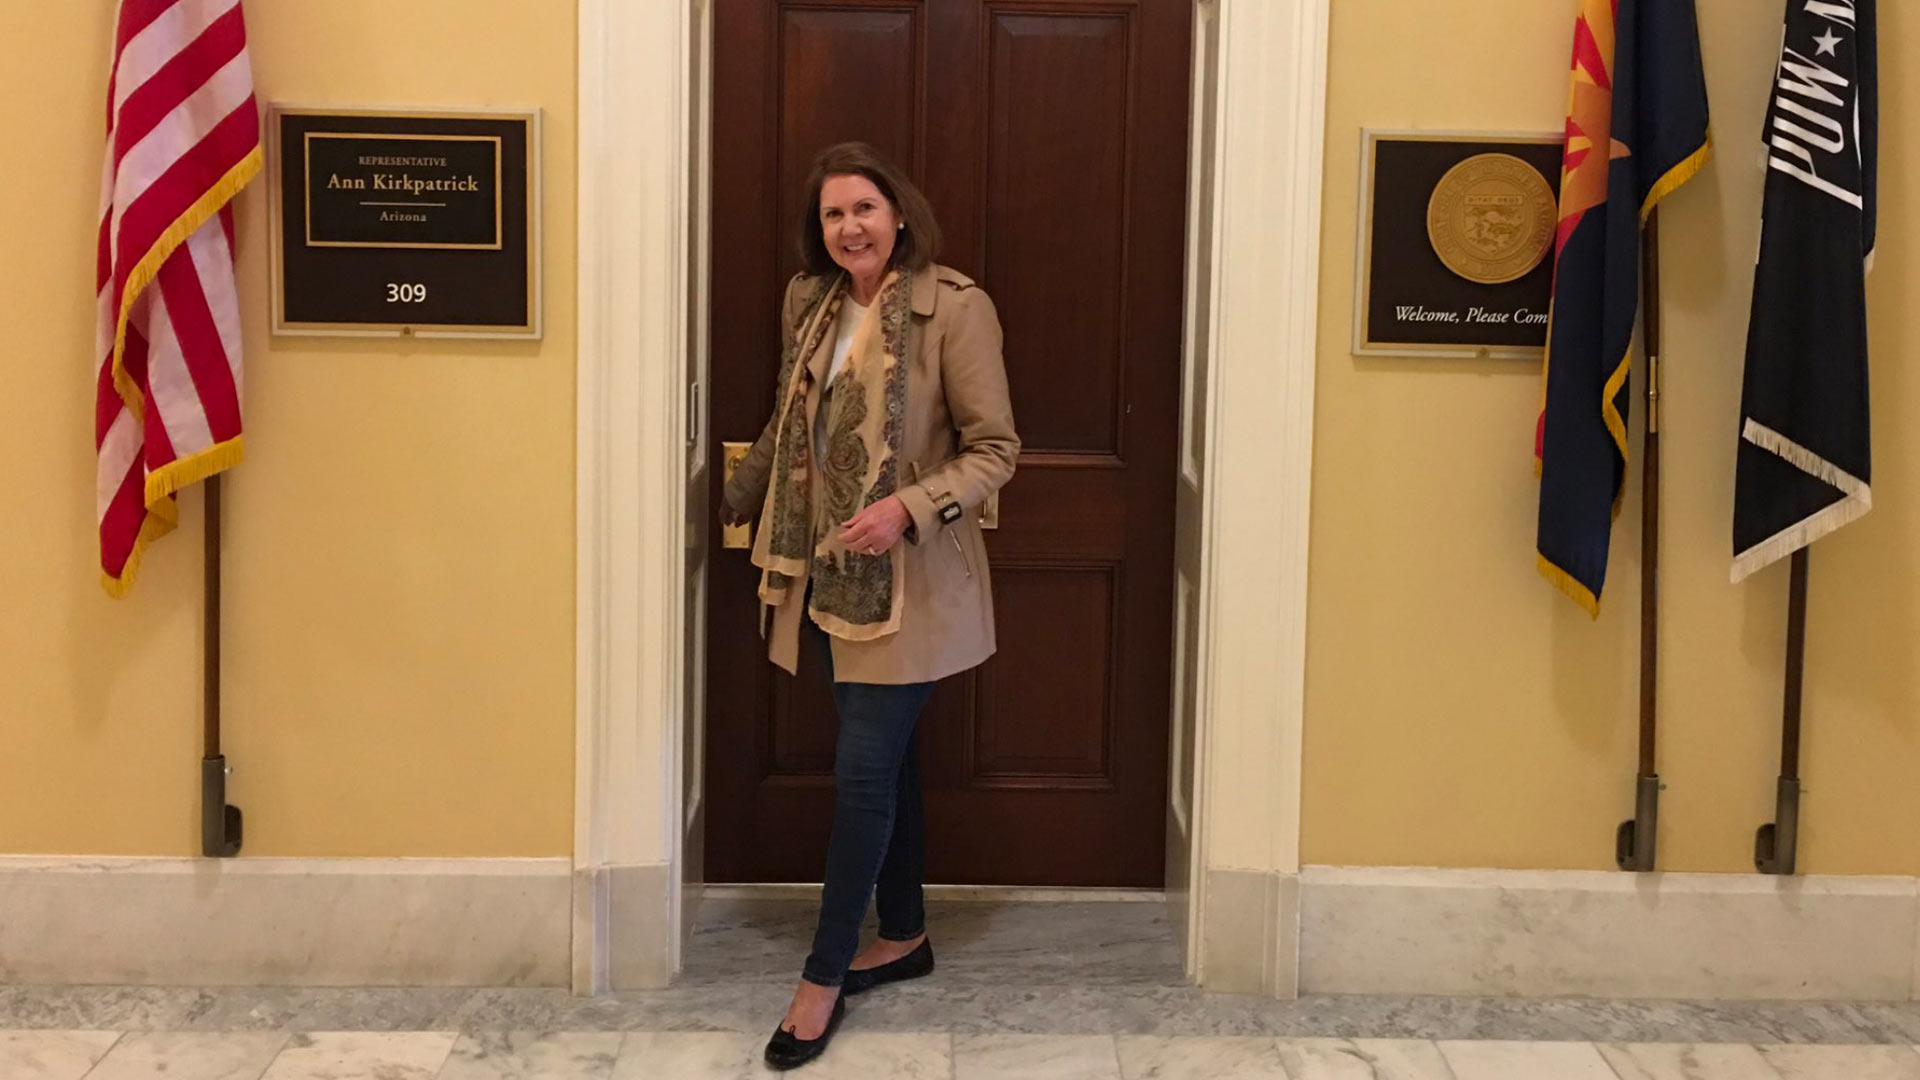 Rep. Ann Kirkpatrick, D-Tucson, stands outside her congressional office in Washington, D.C., in this photo posted on her official Twitter account.